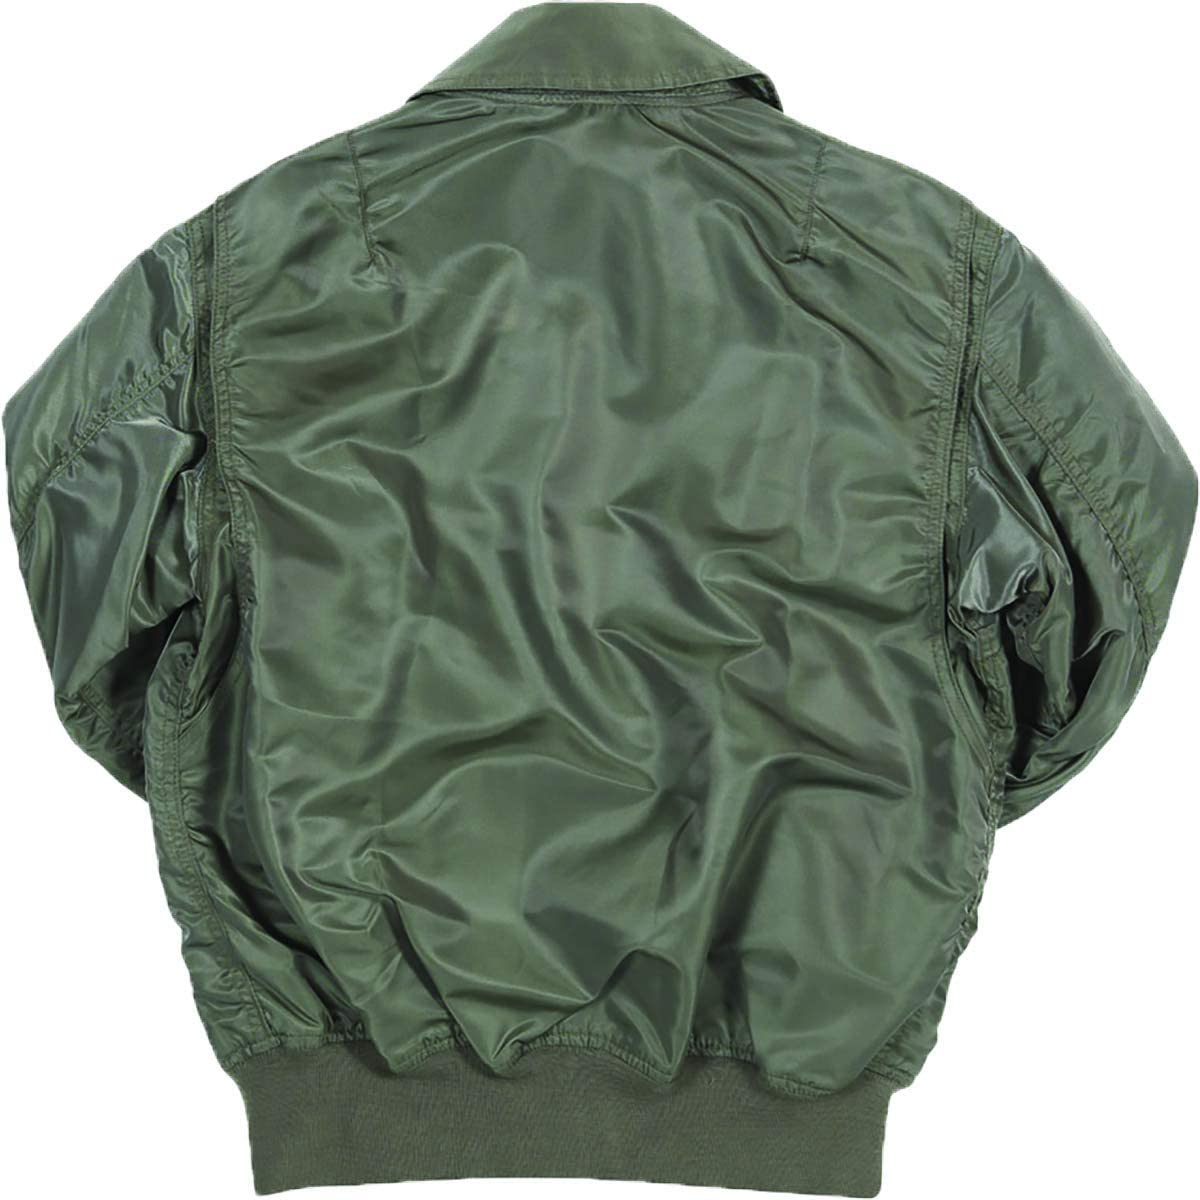 CWU-55P Cold Weather Pilots Jacket